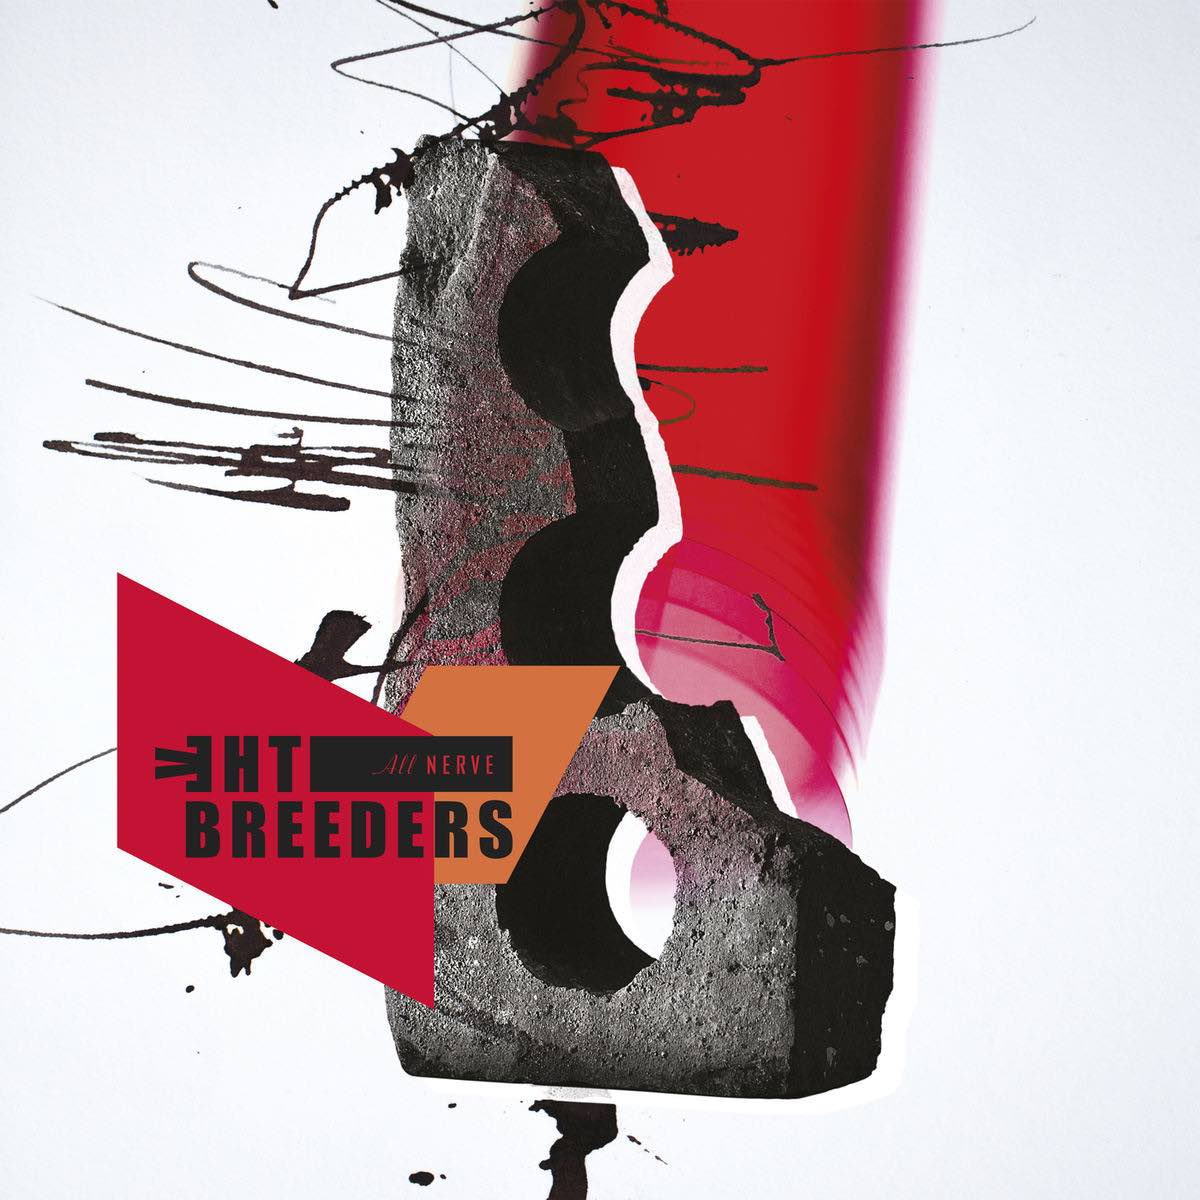 I Left Without My Hat Track Of The Day The Breeders Nervous Mary